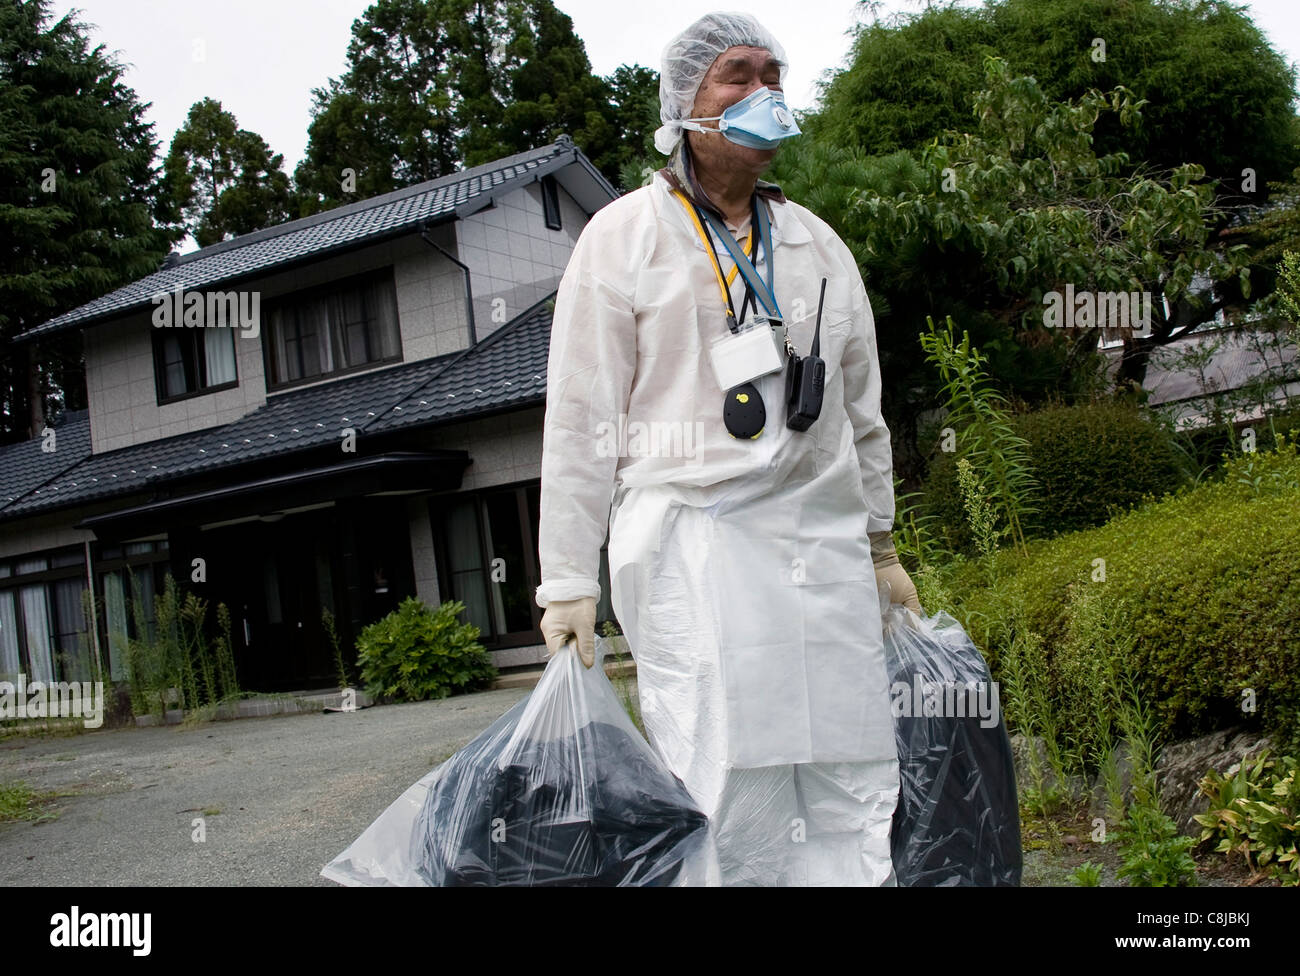 Takashige Kowata leaves his home for what he believes will be the last time in Okuma near the leaking Fukushima - Stock Image